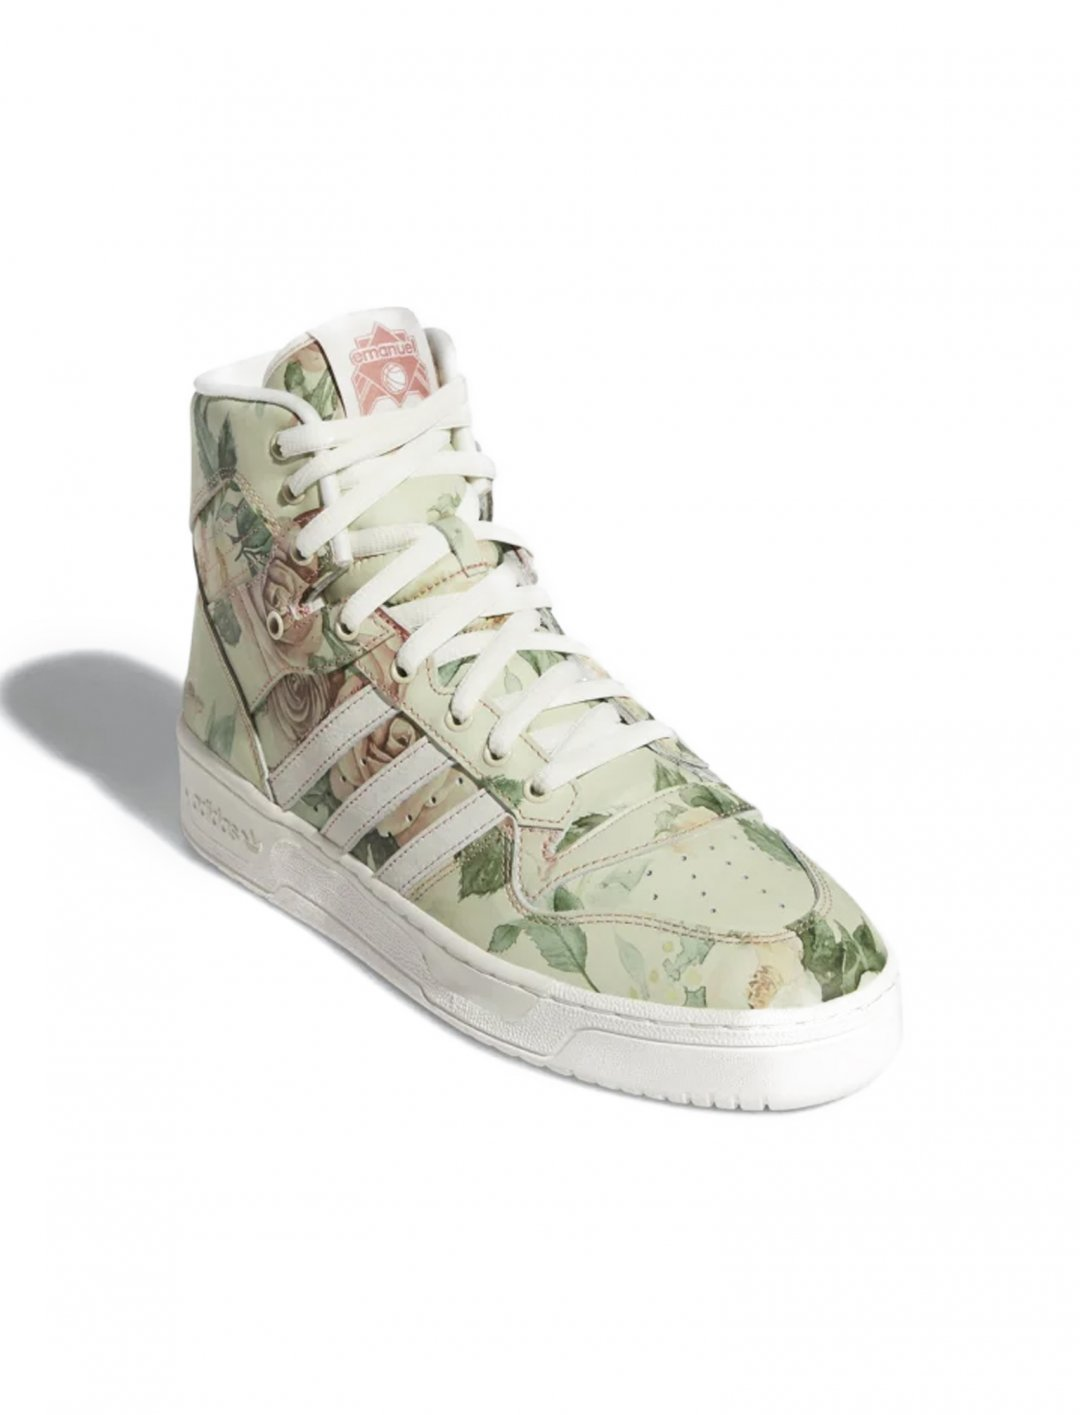 "Eric Emanuel Shoes {""id"":15,""product_section_id"":1,""name"":""Other"",""order"":0} Adidas"